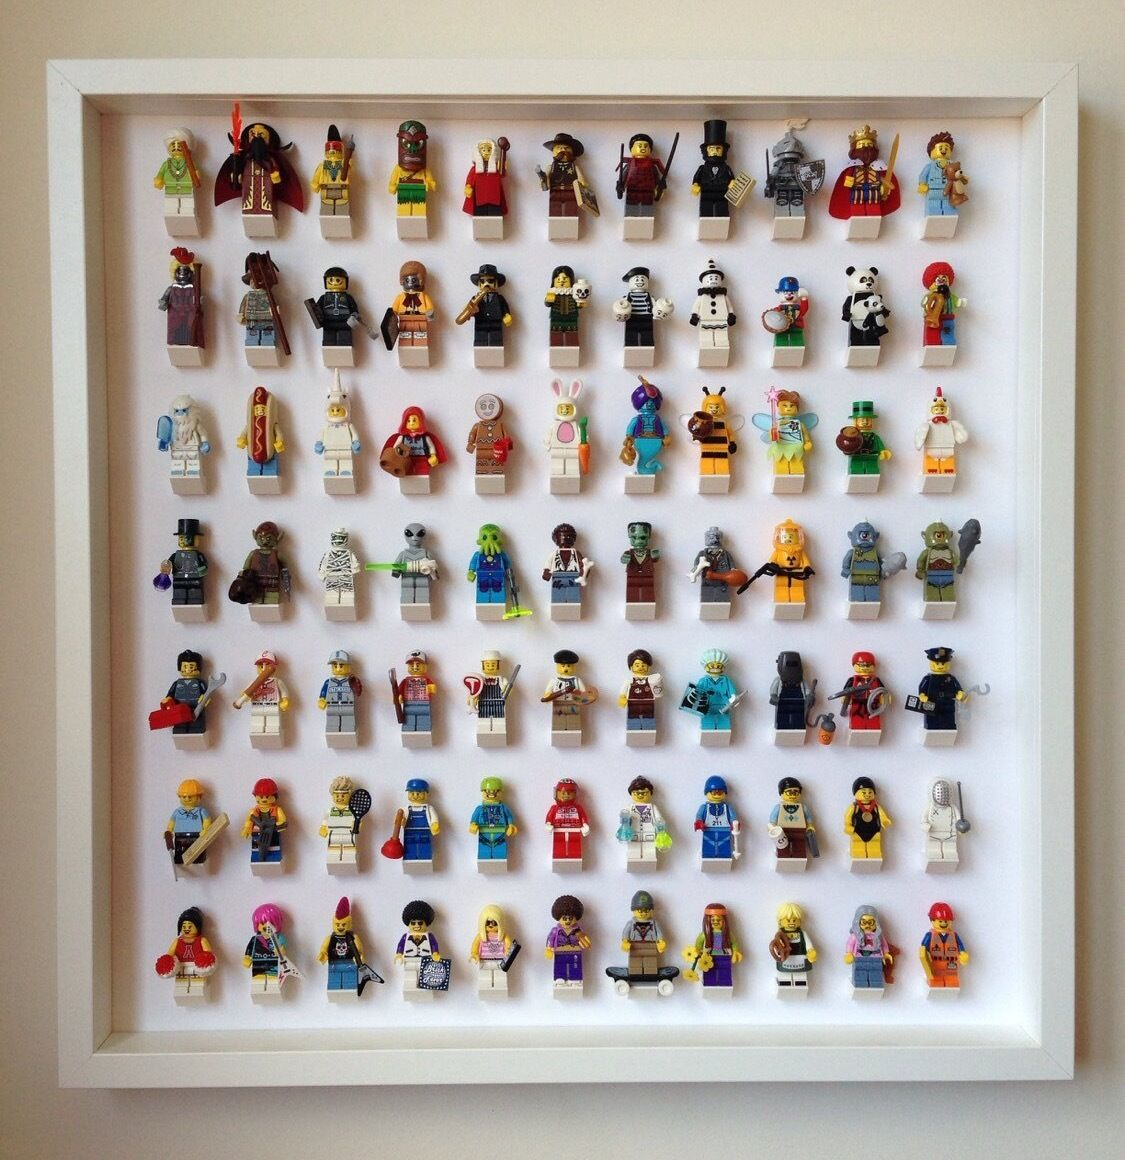 Lego Frame, Large Weiß Display Case for Lego Minifigures. Holds 77 Minifigs